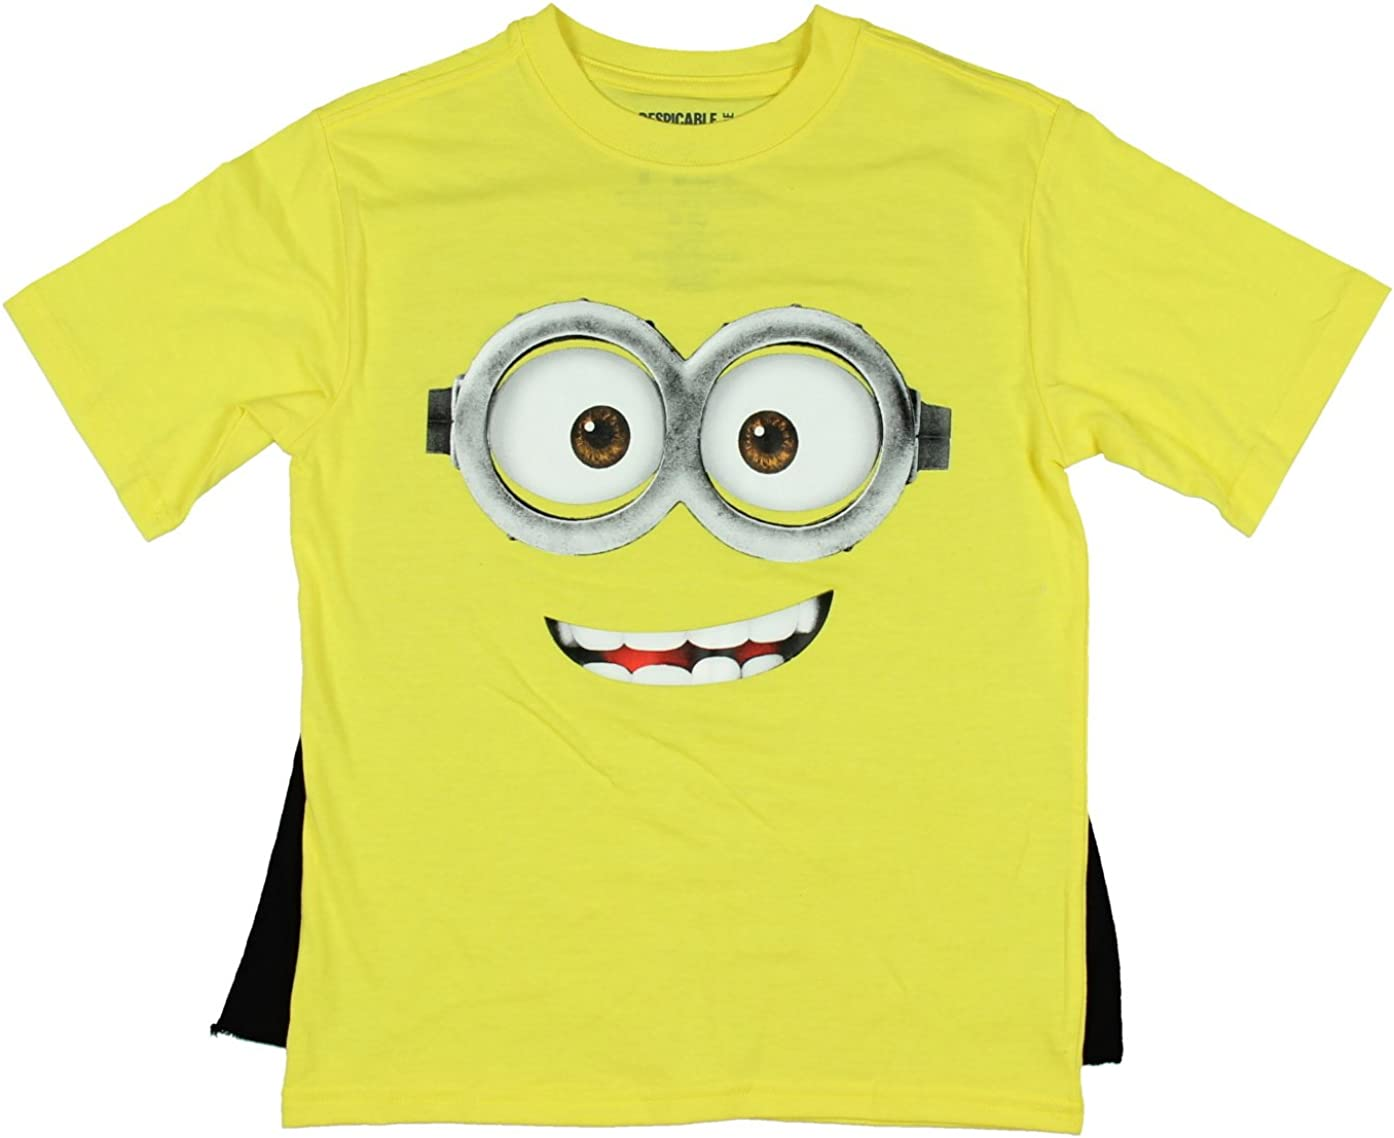 Despicable Me Minion Smile Graphic Shirt with Cape Large 10//12